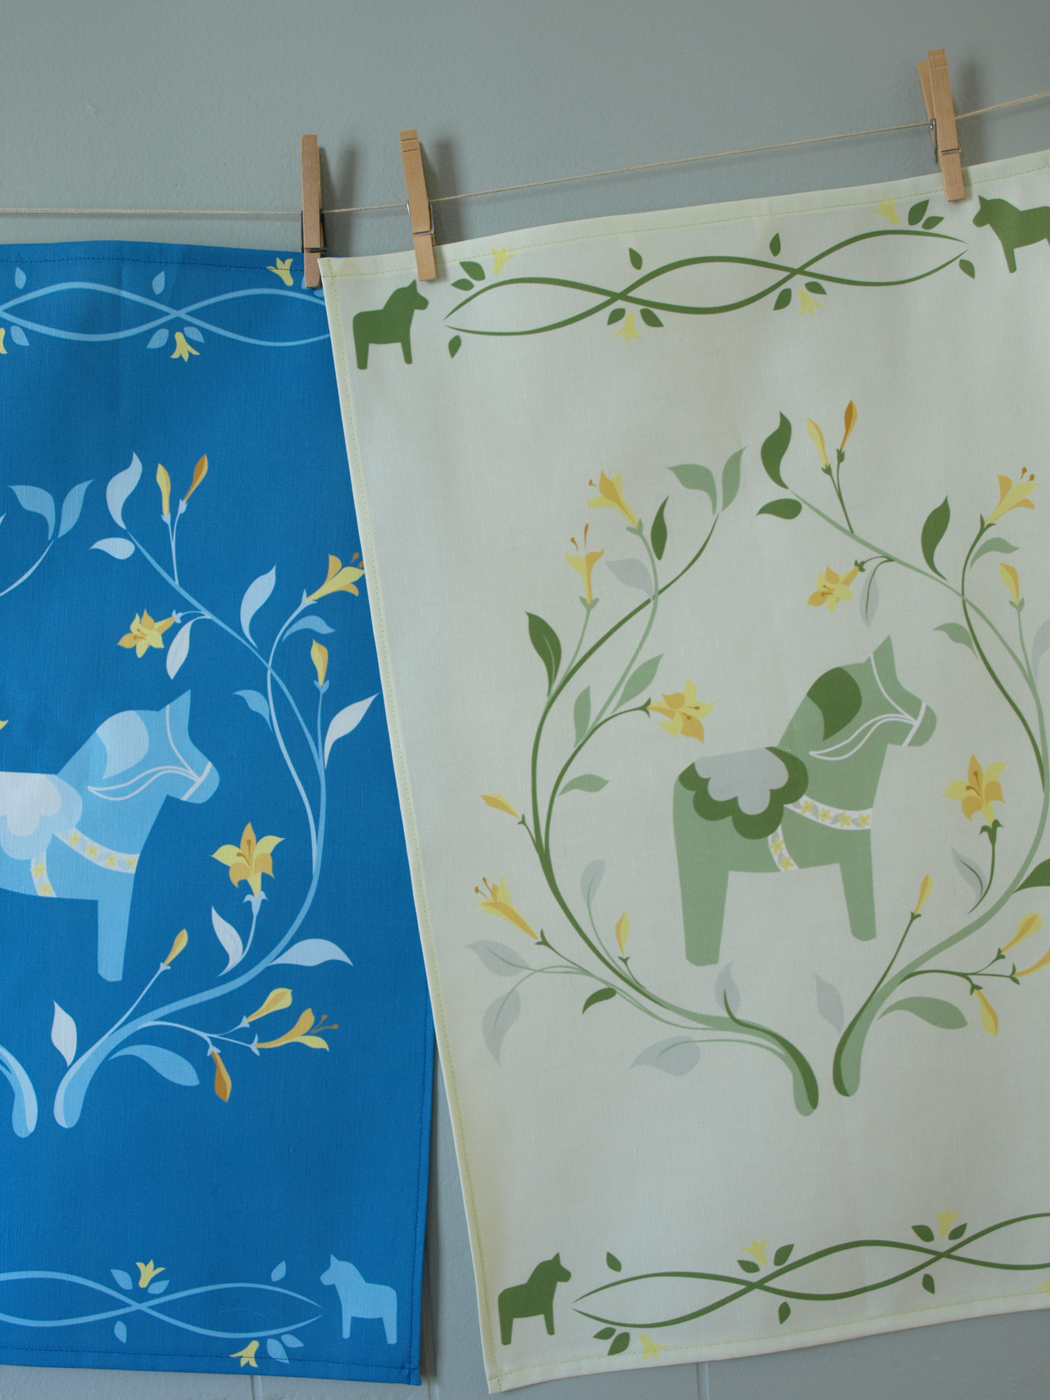 Spring dala horse tea towels, thanks to Marta for the suggestion!